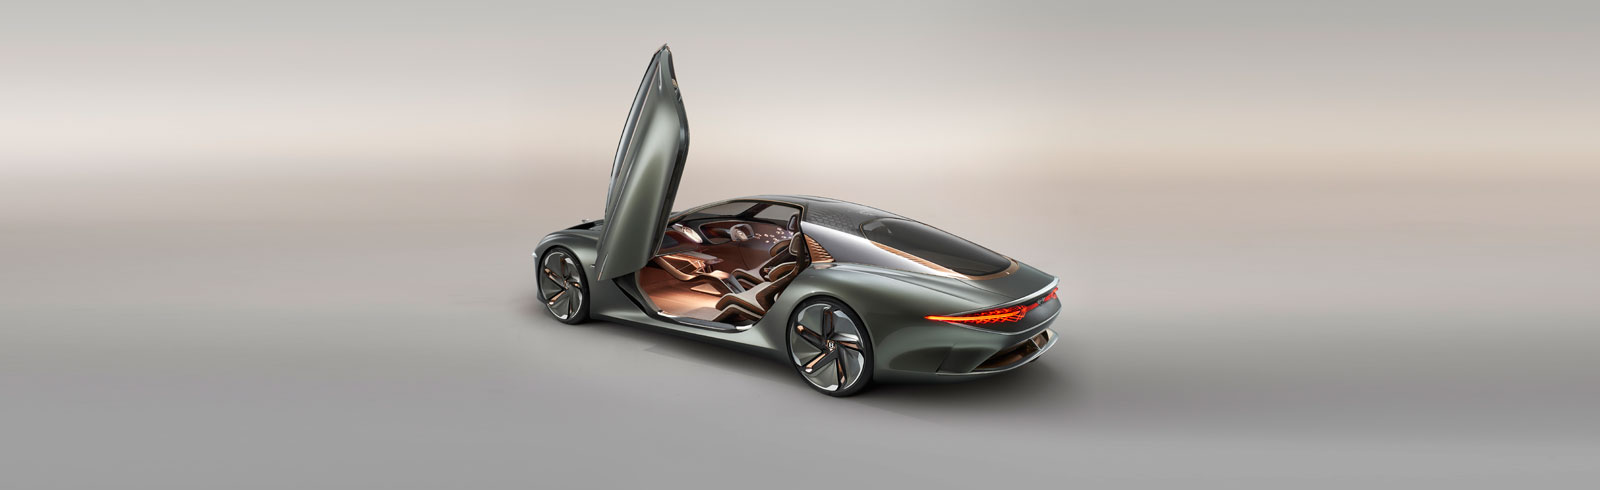 The Bentley EXP 100 GT concept is unveiled as the epitome of luxurious electric mobility of the future